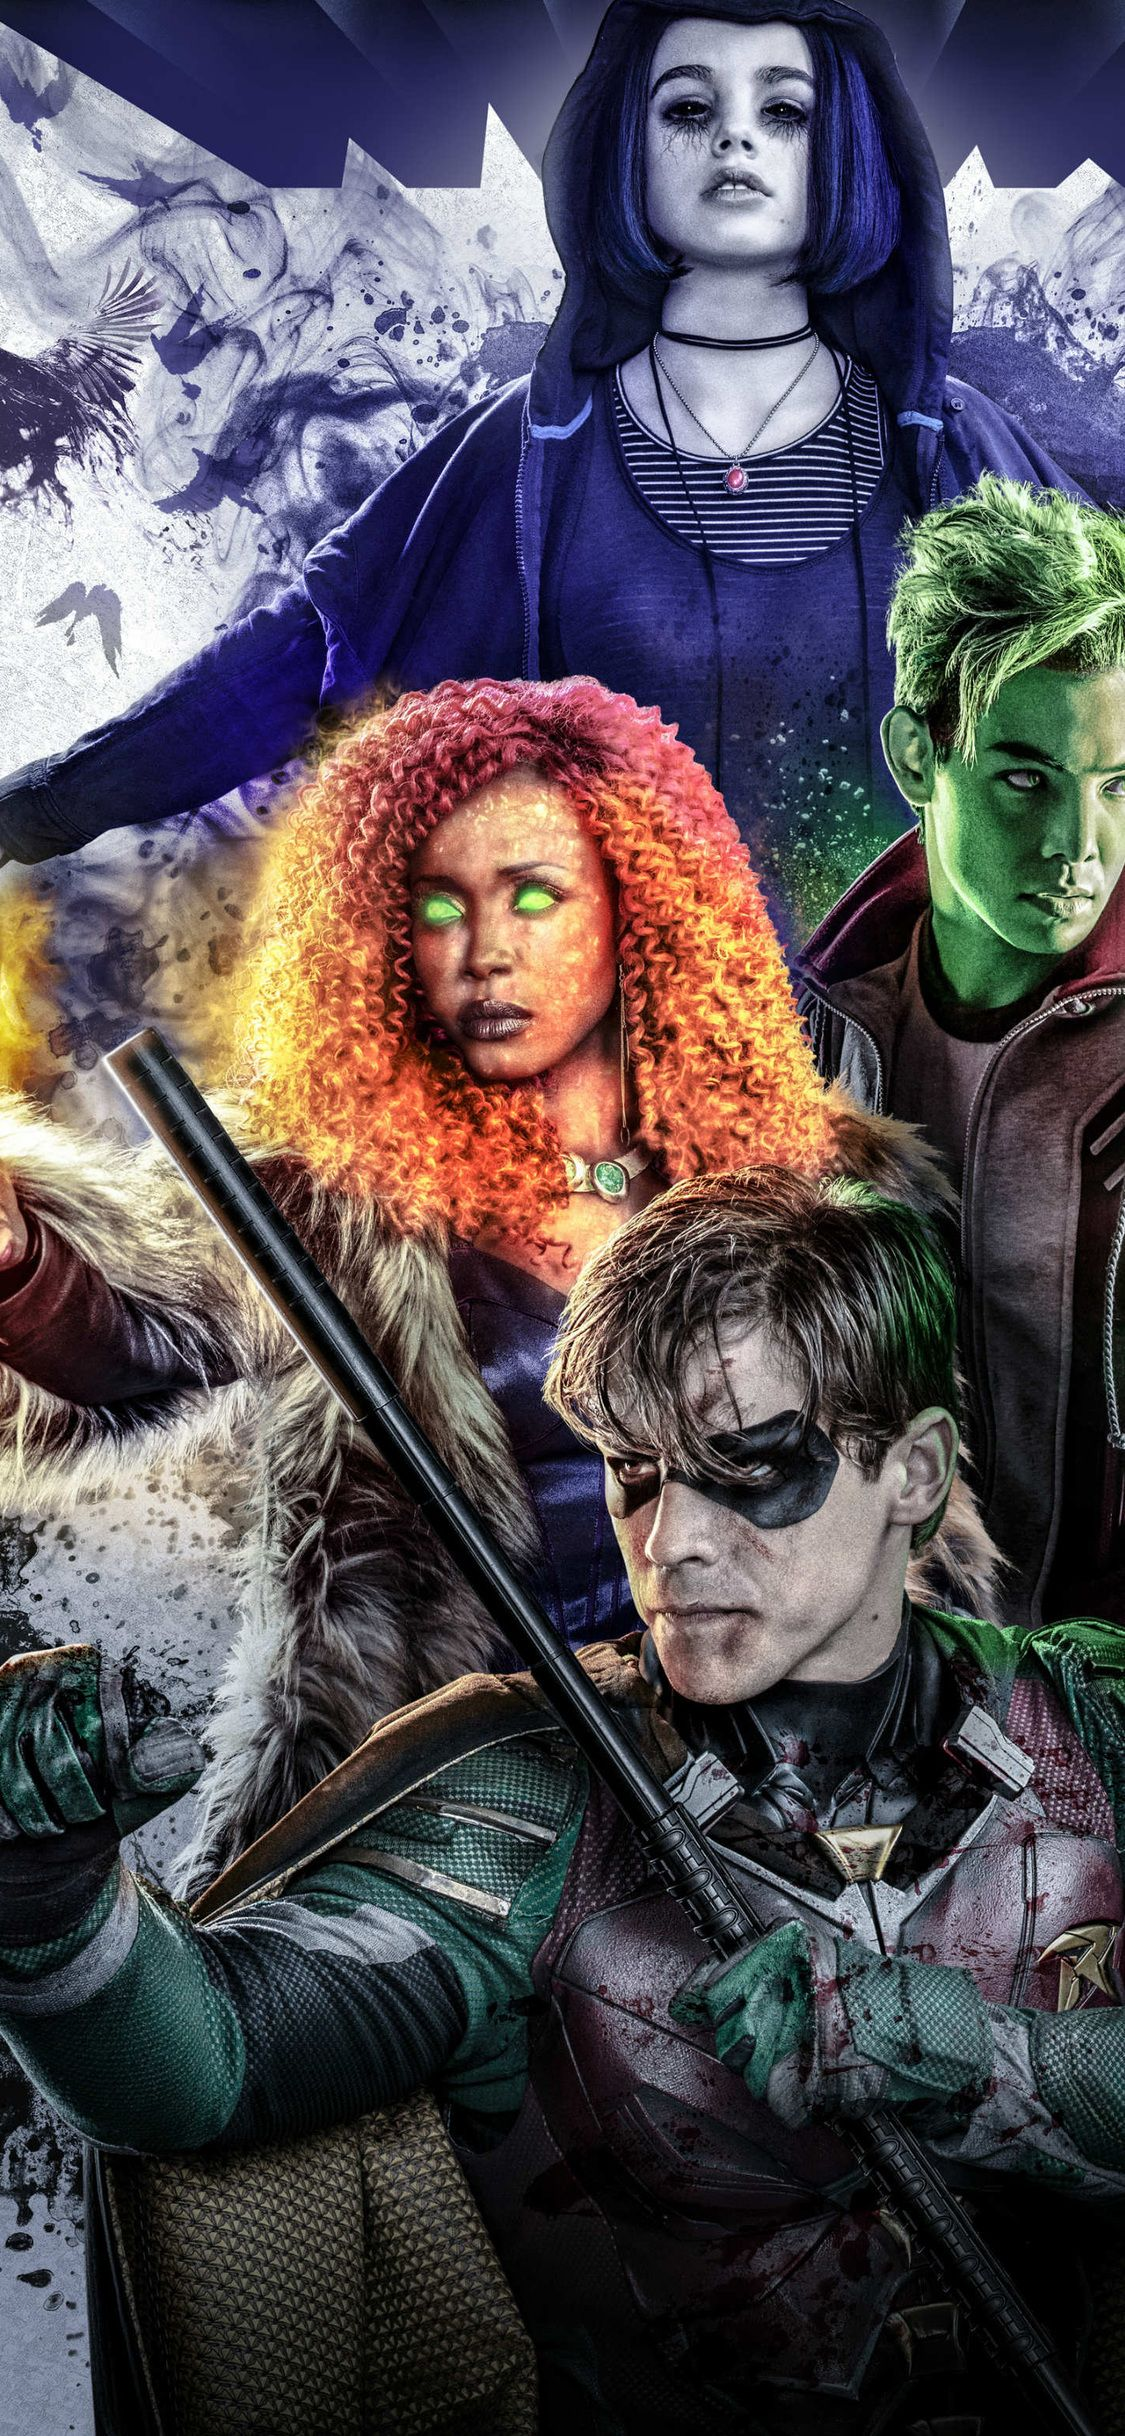 1125x2436 Beast Boy Raven And Starfire In Titans 2018